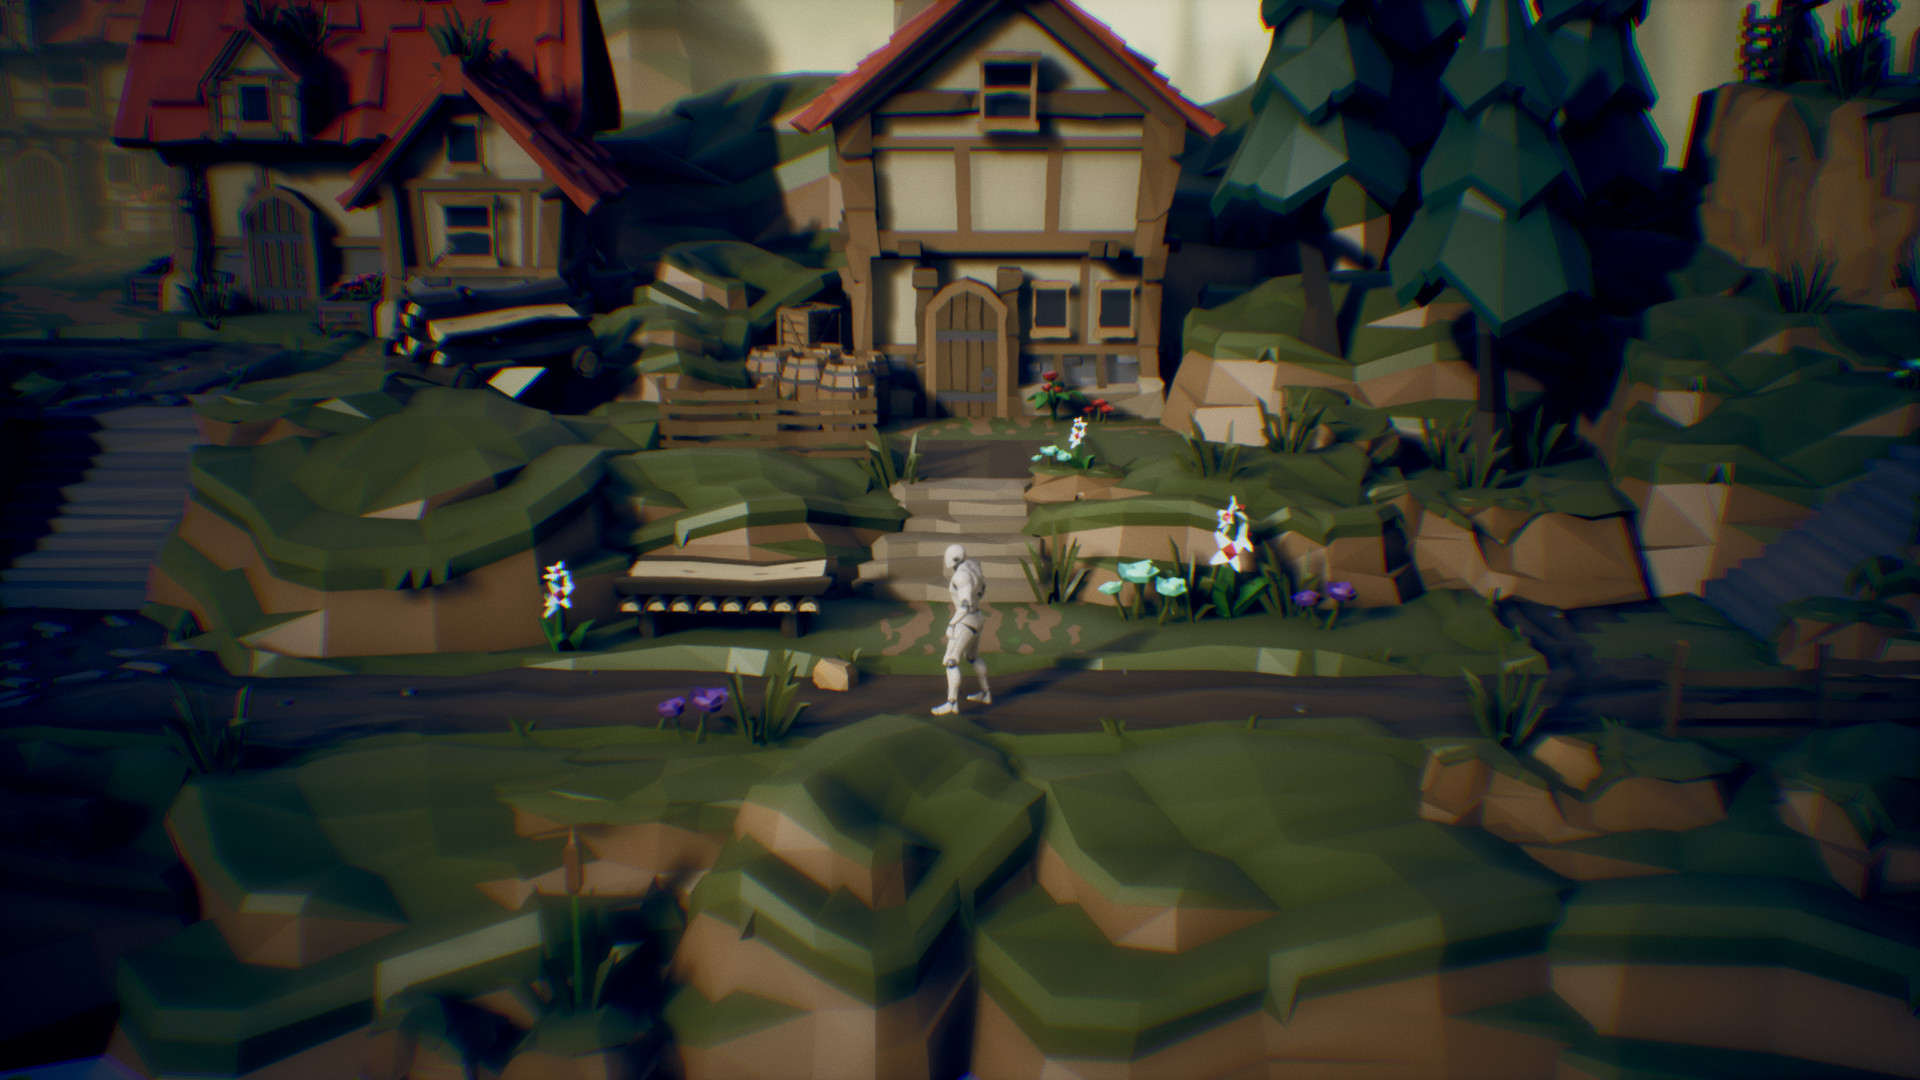 ArtStation - POLYGON side scroller art, Michael Wong